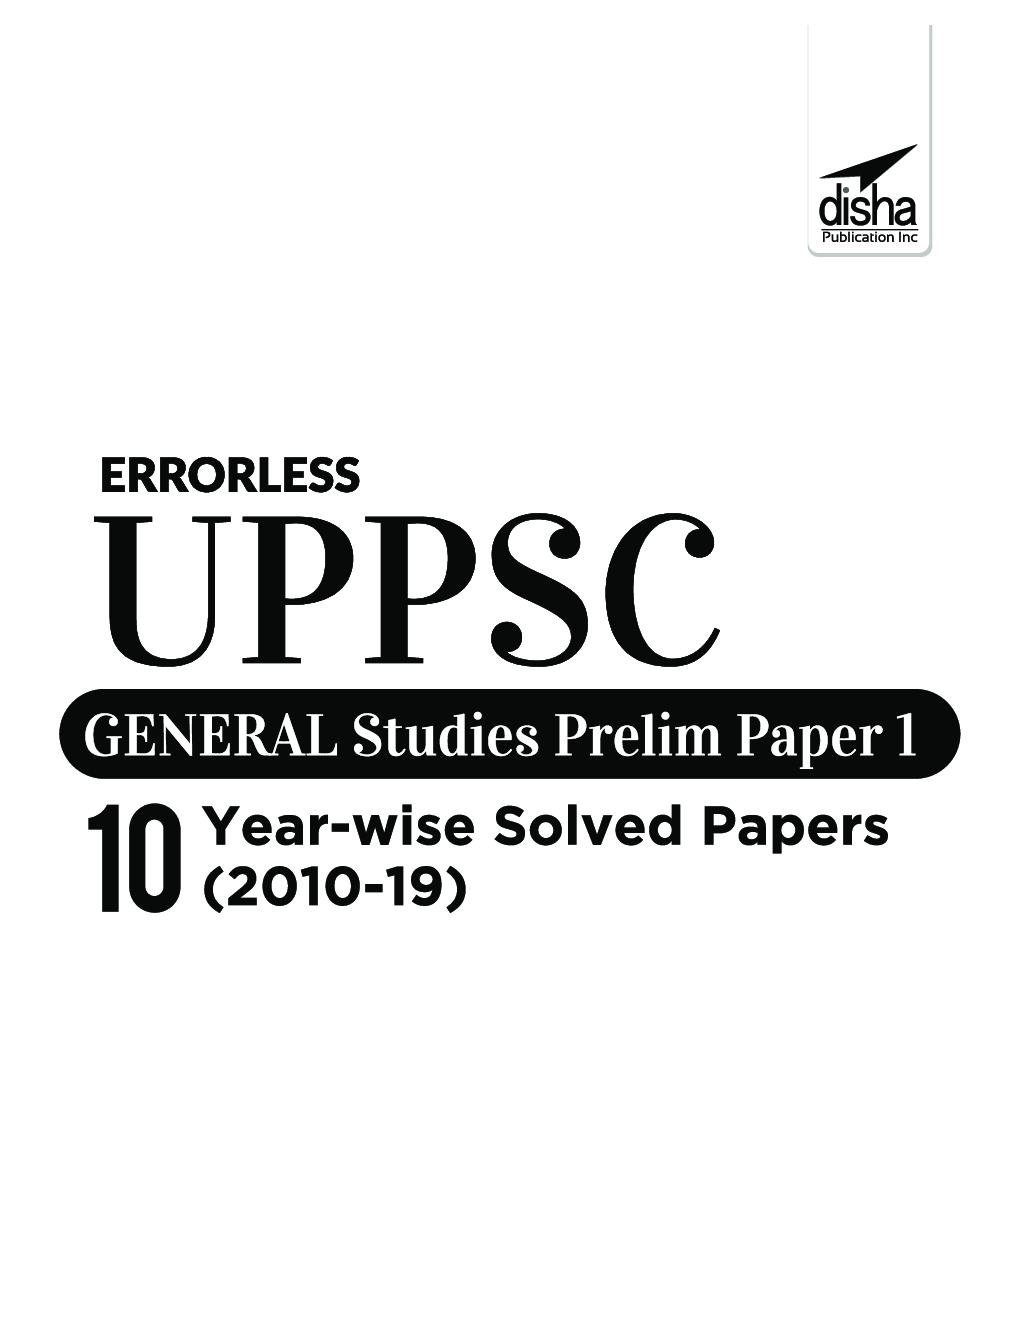 Errorless UPPSC General Studies Prelim Paper 1 - 10 Year-Wise Solved Papers (2010 - 19) - Page 2